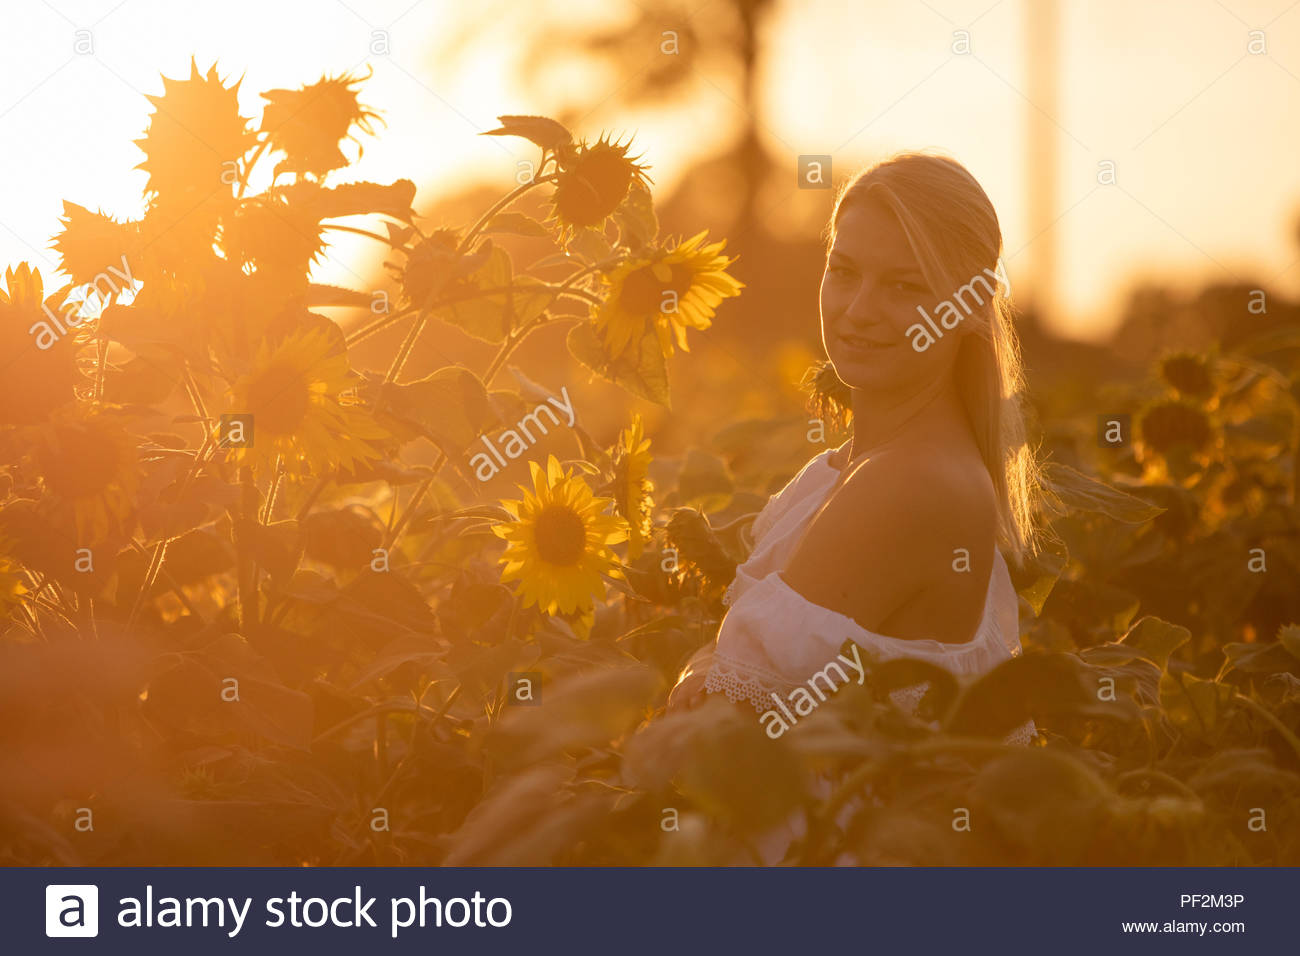 Slavic blond girl on the field of sunflowers - Stock Image